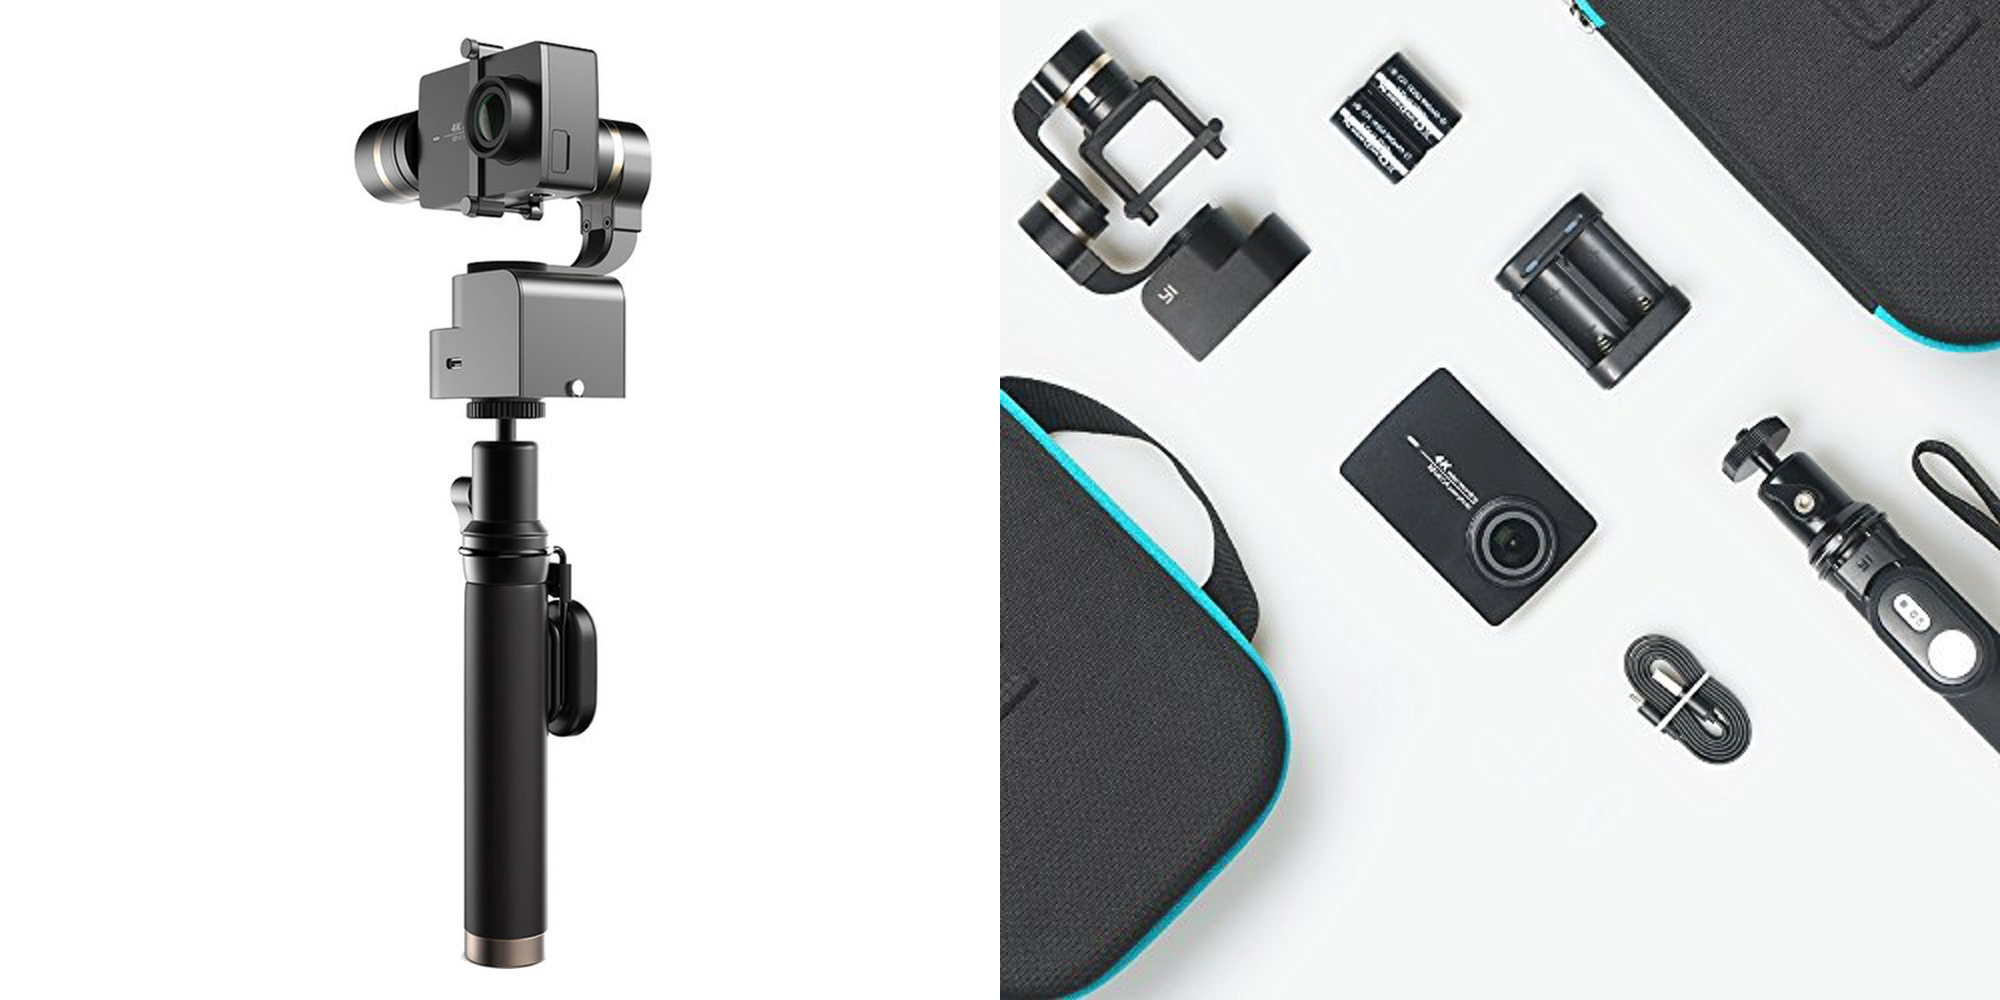 Start capturing smooth 4K video with the $280 YI Action Cam & Gimbal Bundle ($100 off)